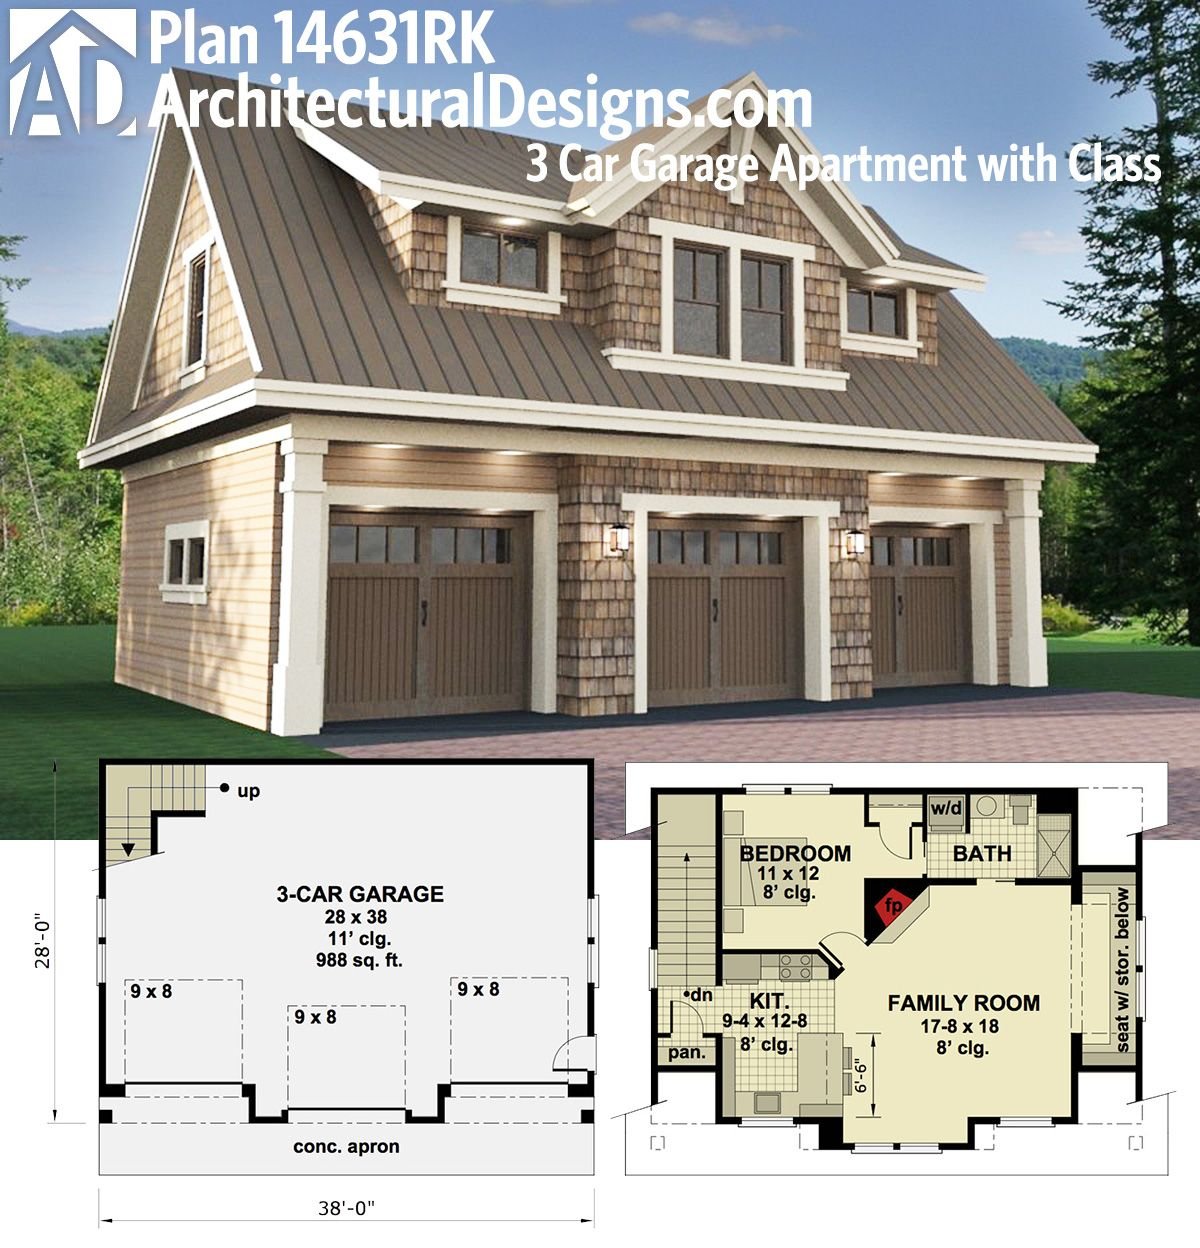 Plan 14631rk 3 car garage apartment with class carriage 3 bay garage apartment plans